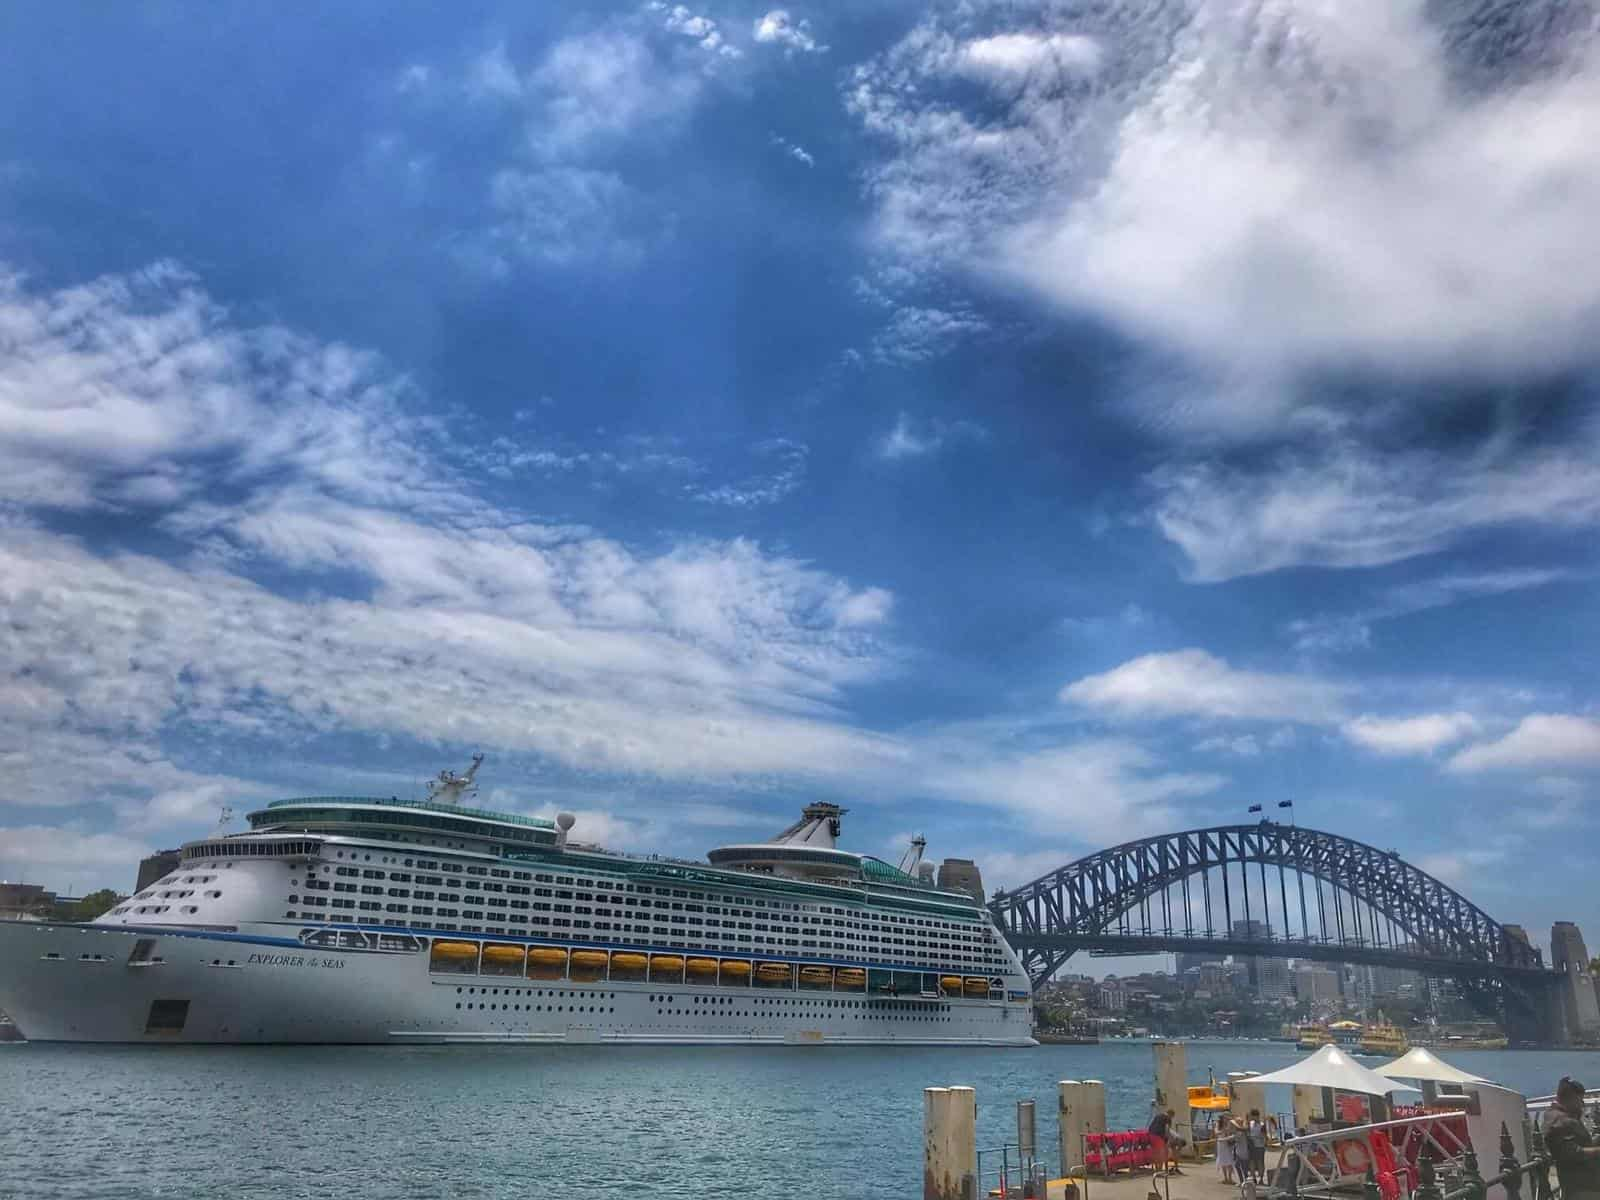 Cruise Ship in Sydney Port - one of the best Winter Cruise Destinations - the answer to where to cruise during Winter